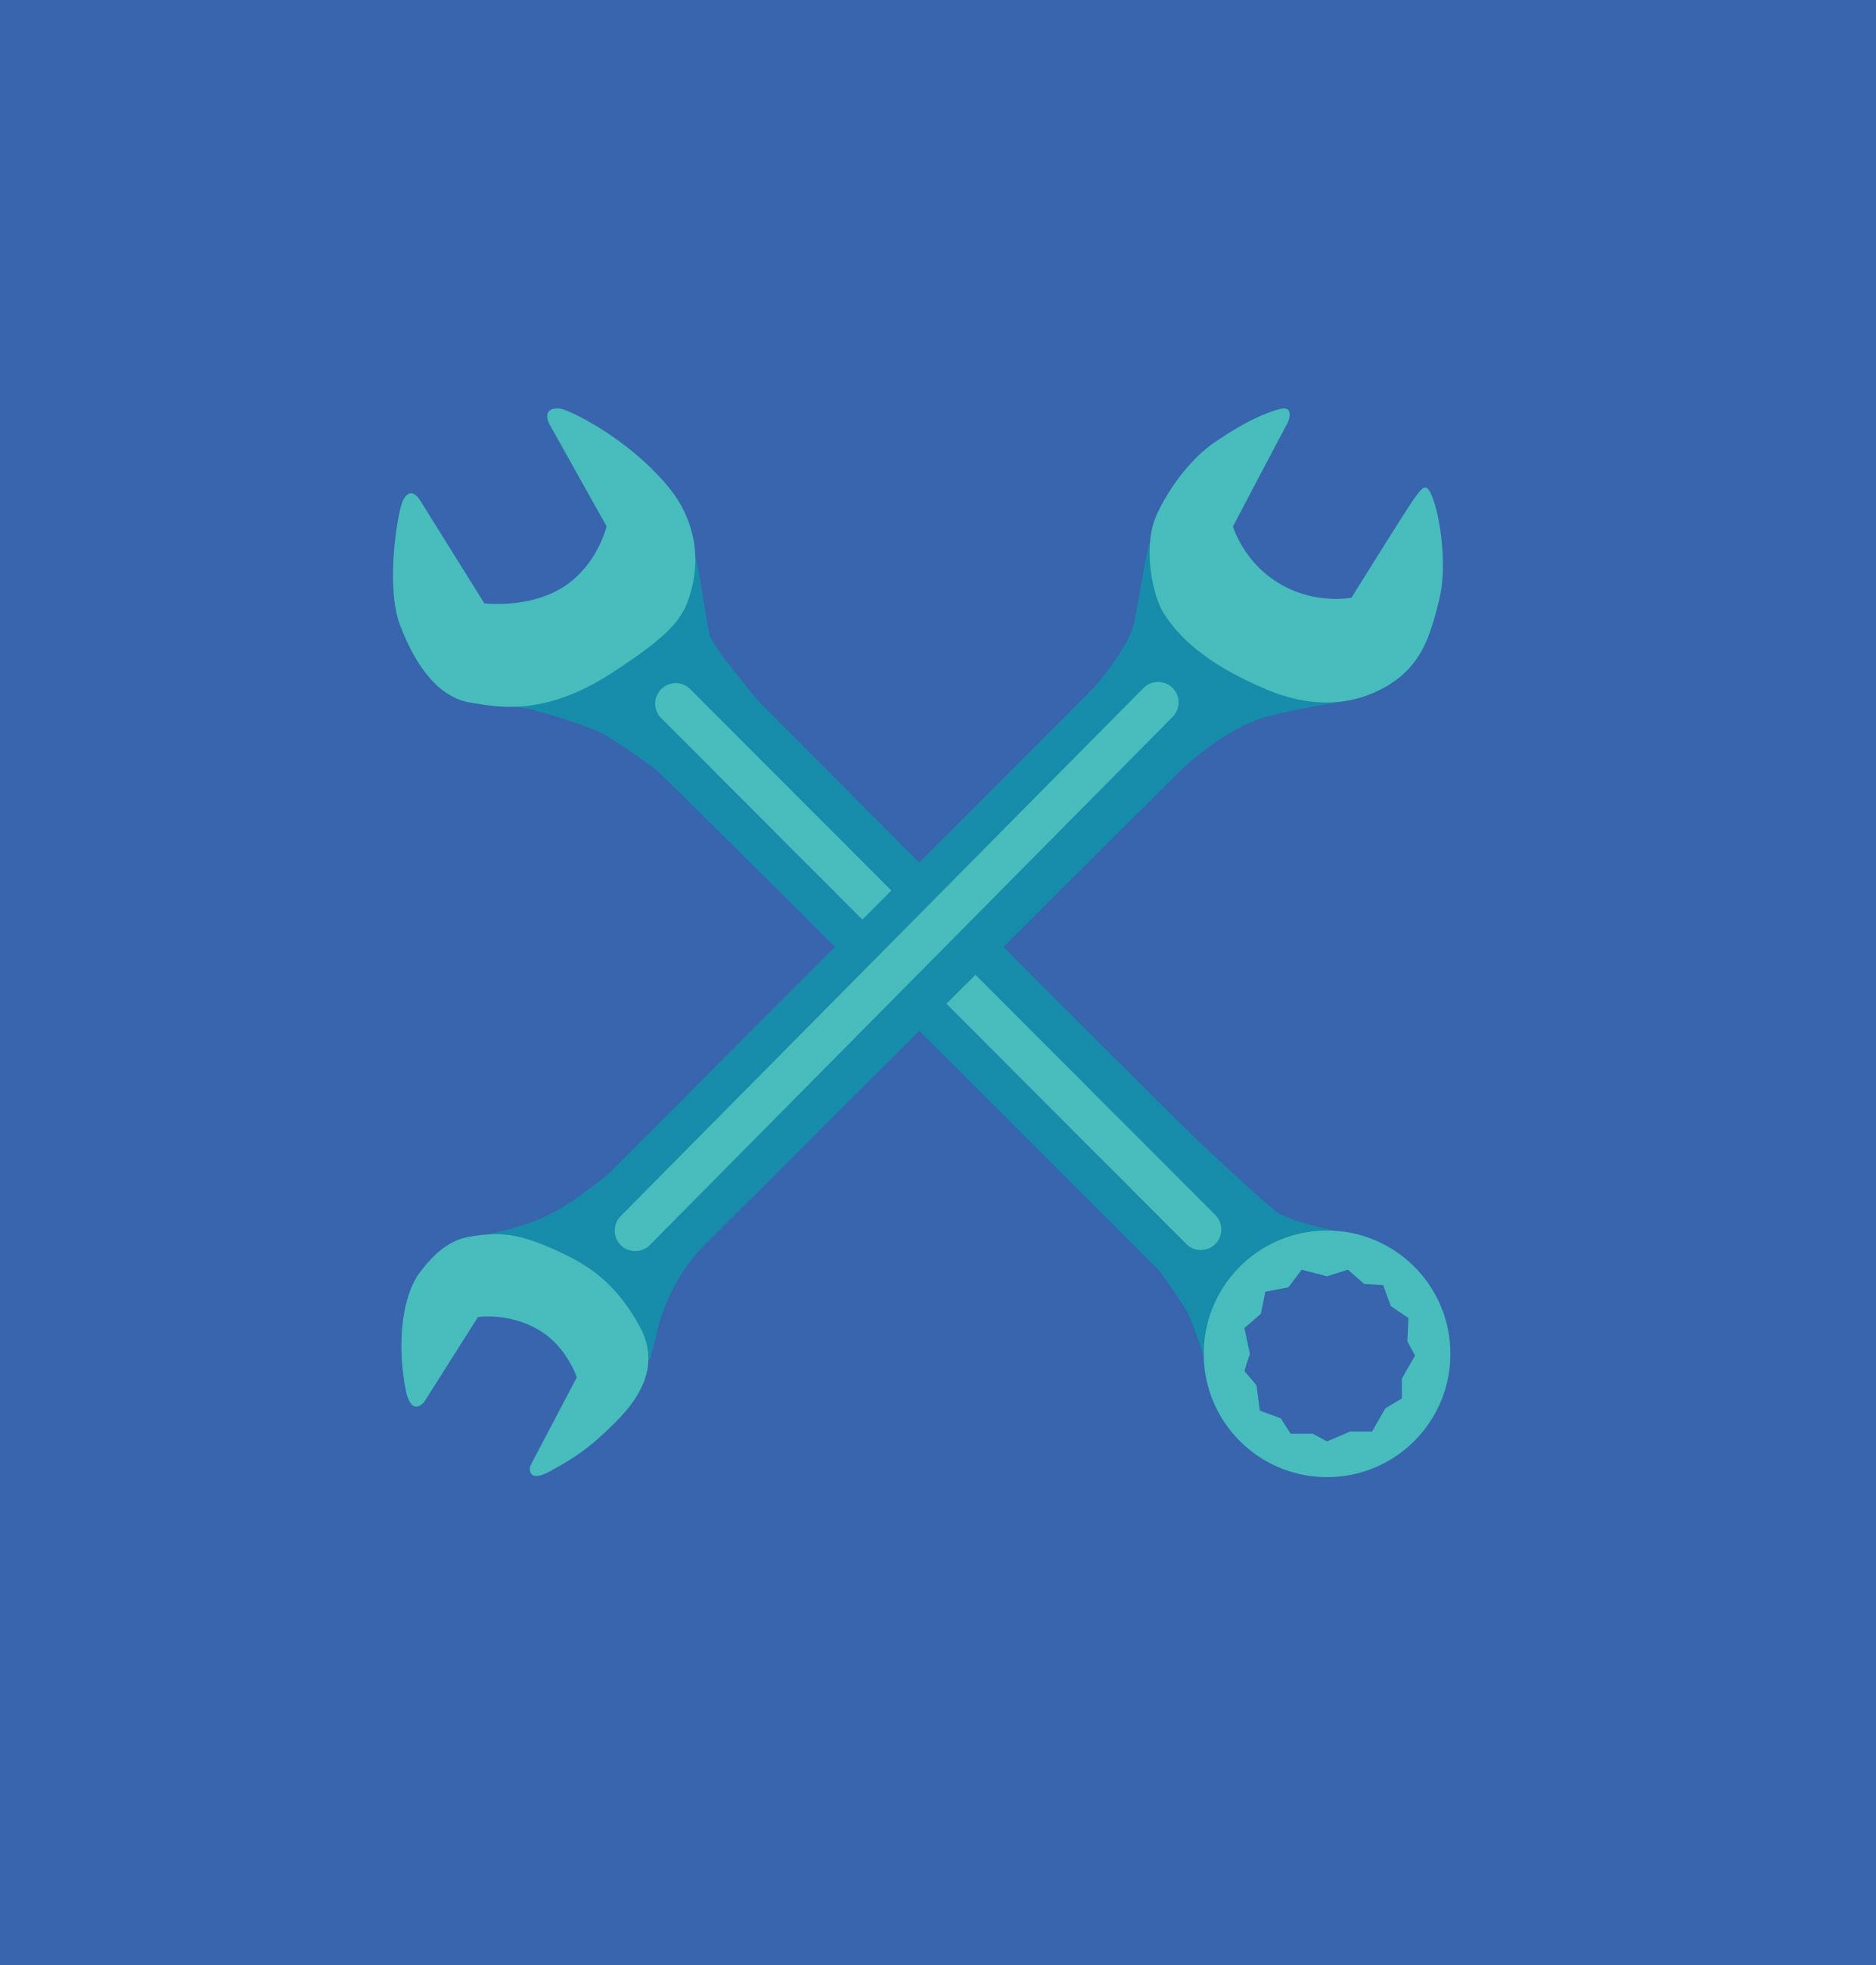 Crossed Spanner icons